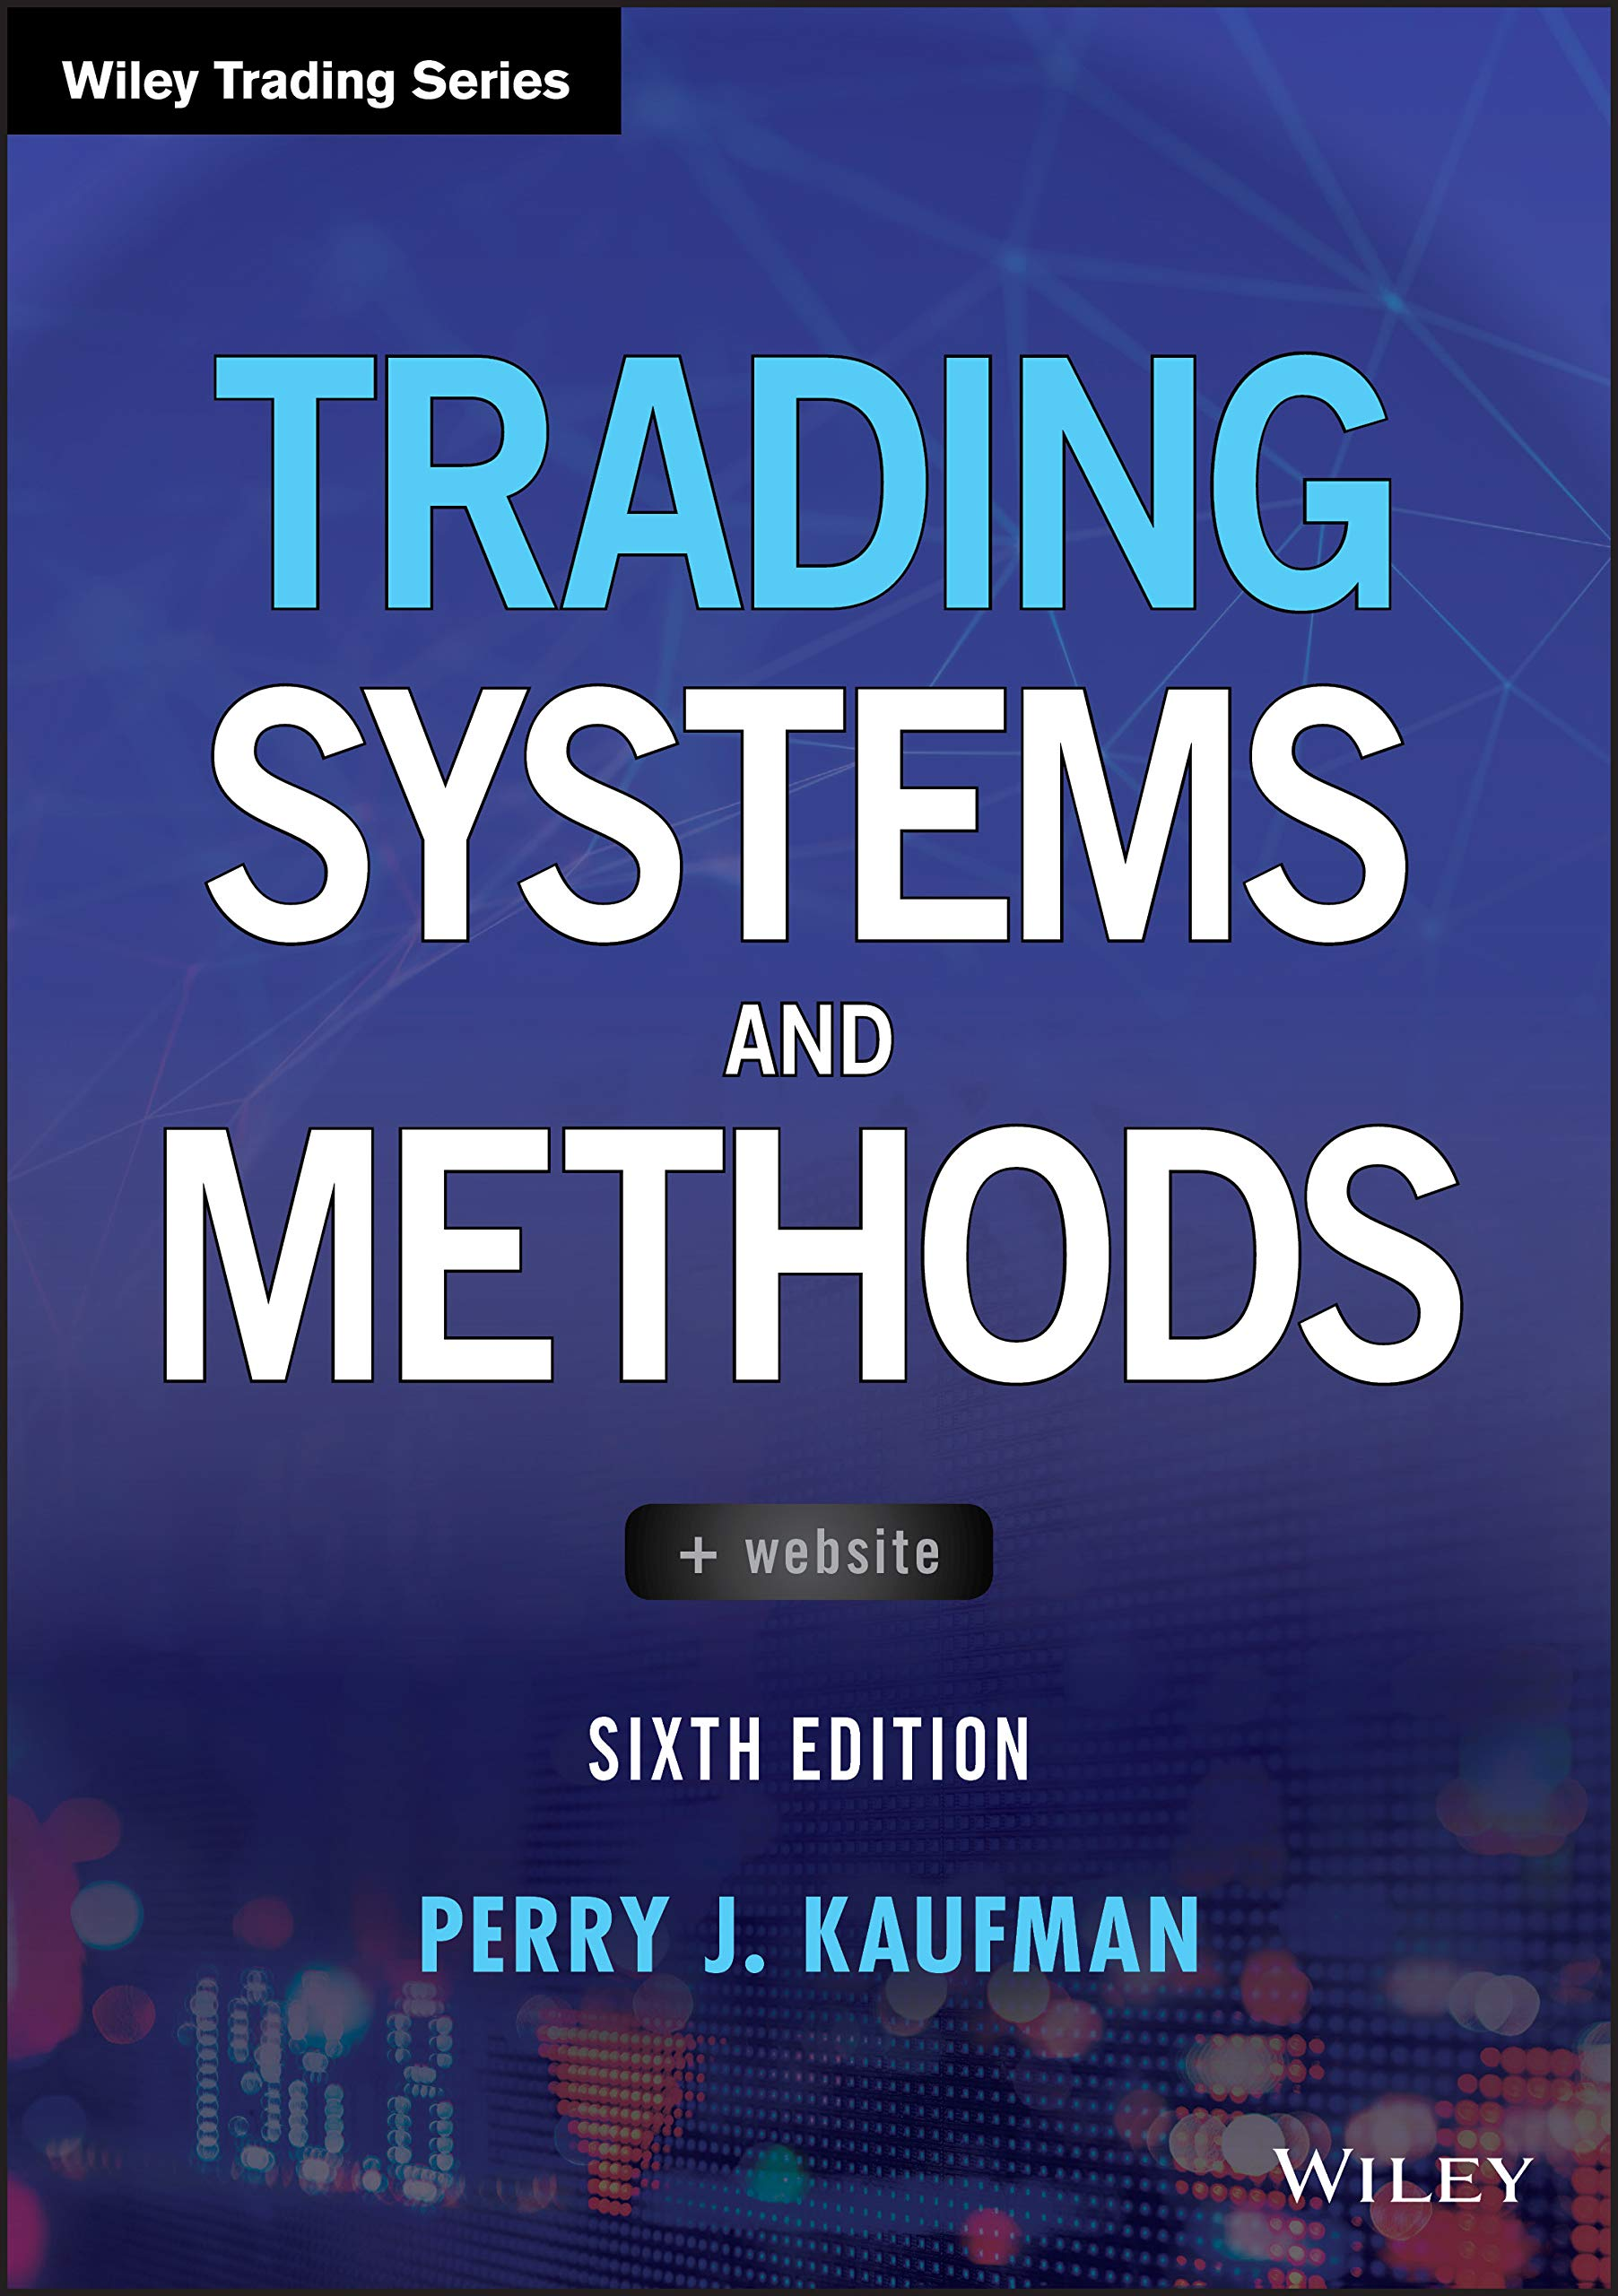 Image OfTrading Systems And Methods